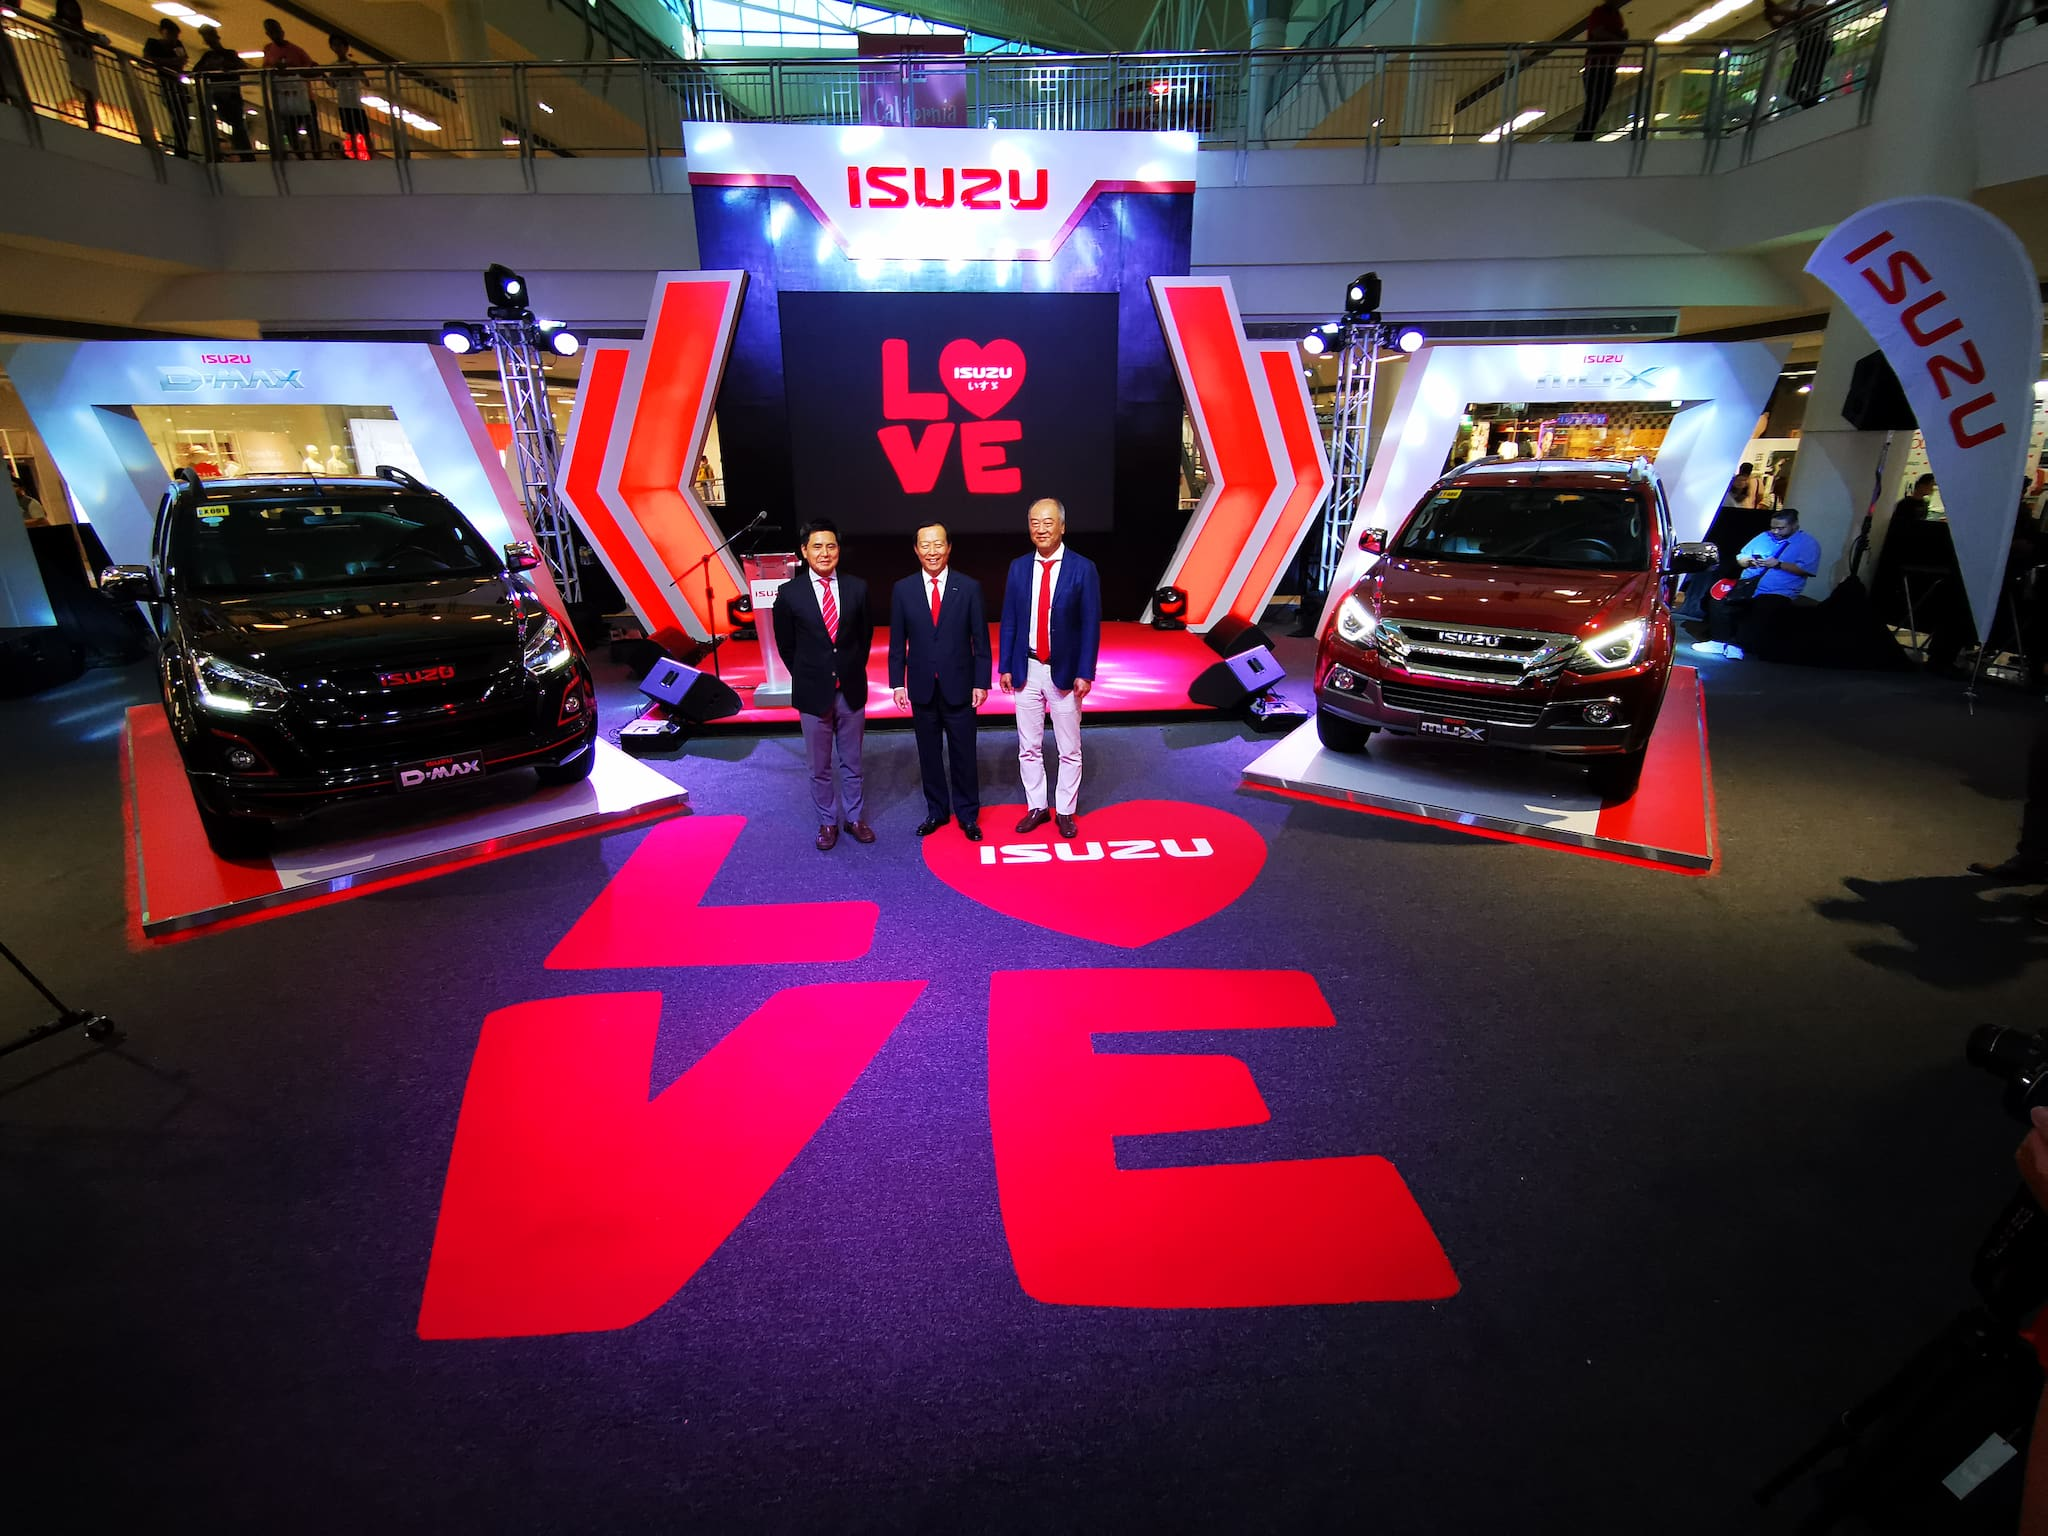 Isuzu PH Launches 'I Love Isuzu' Campaign